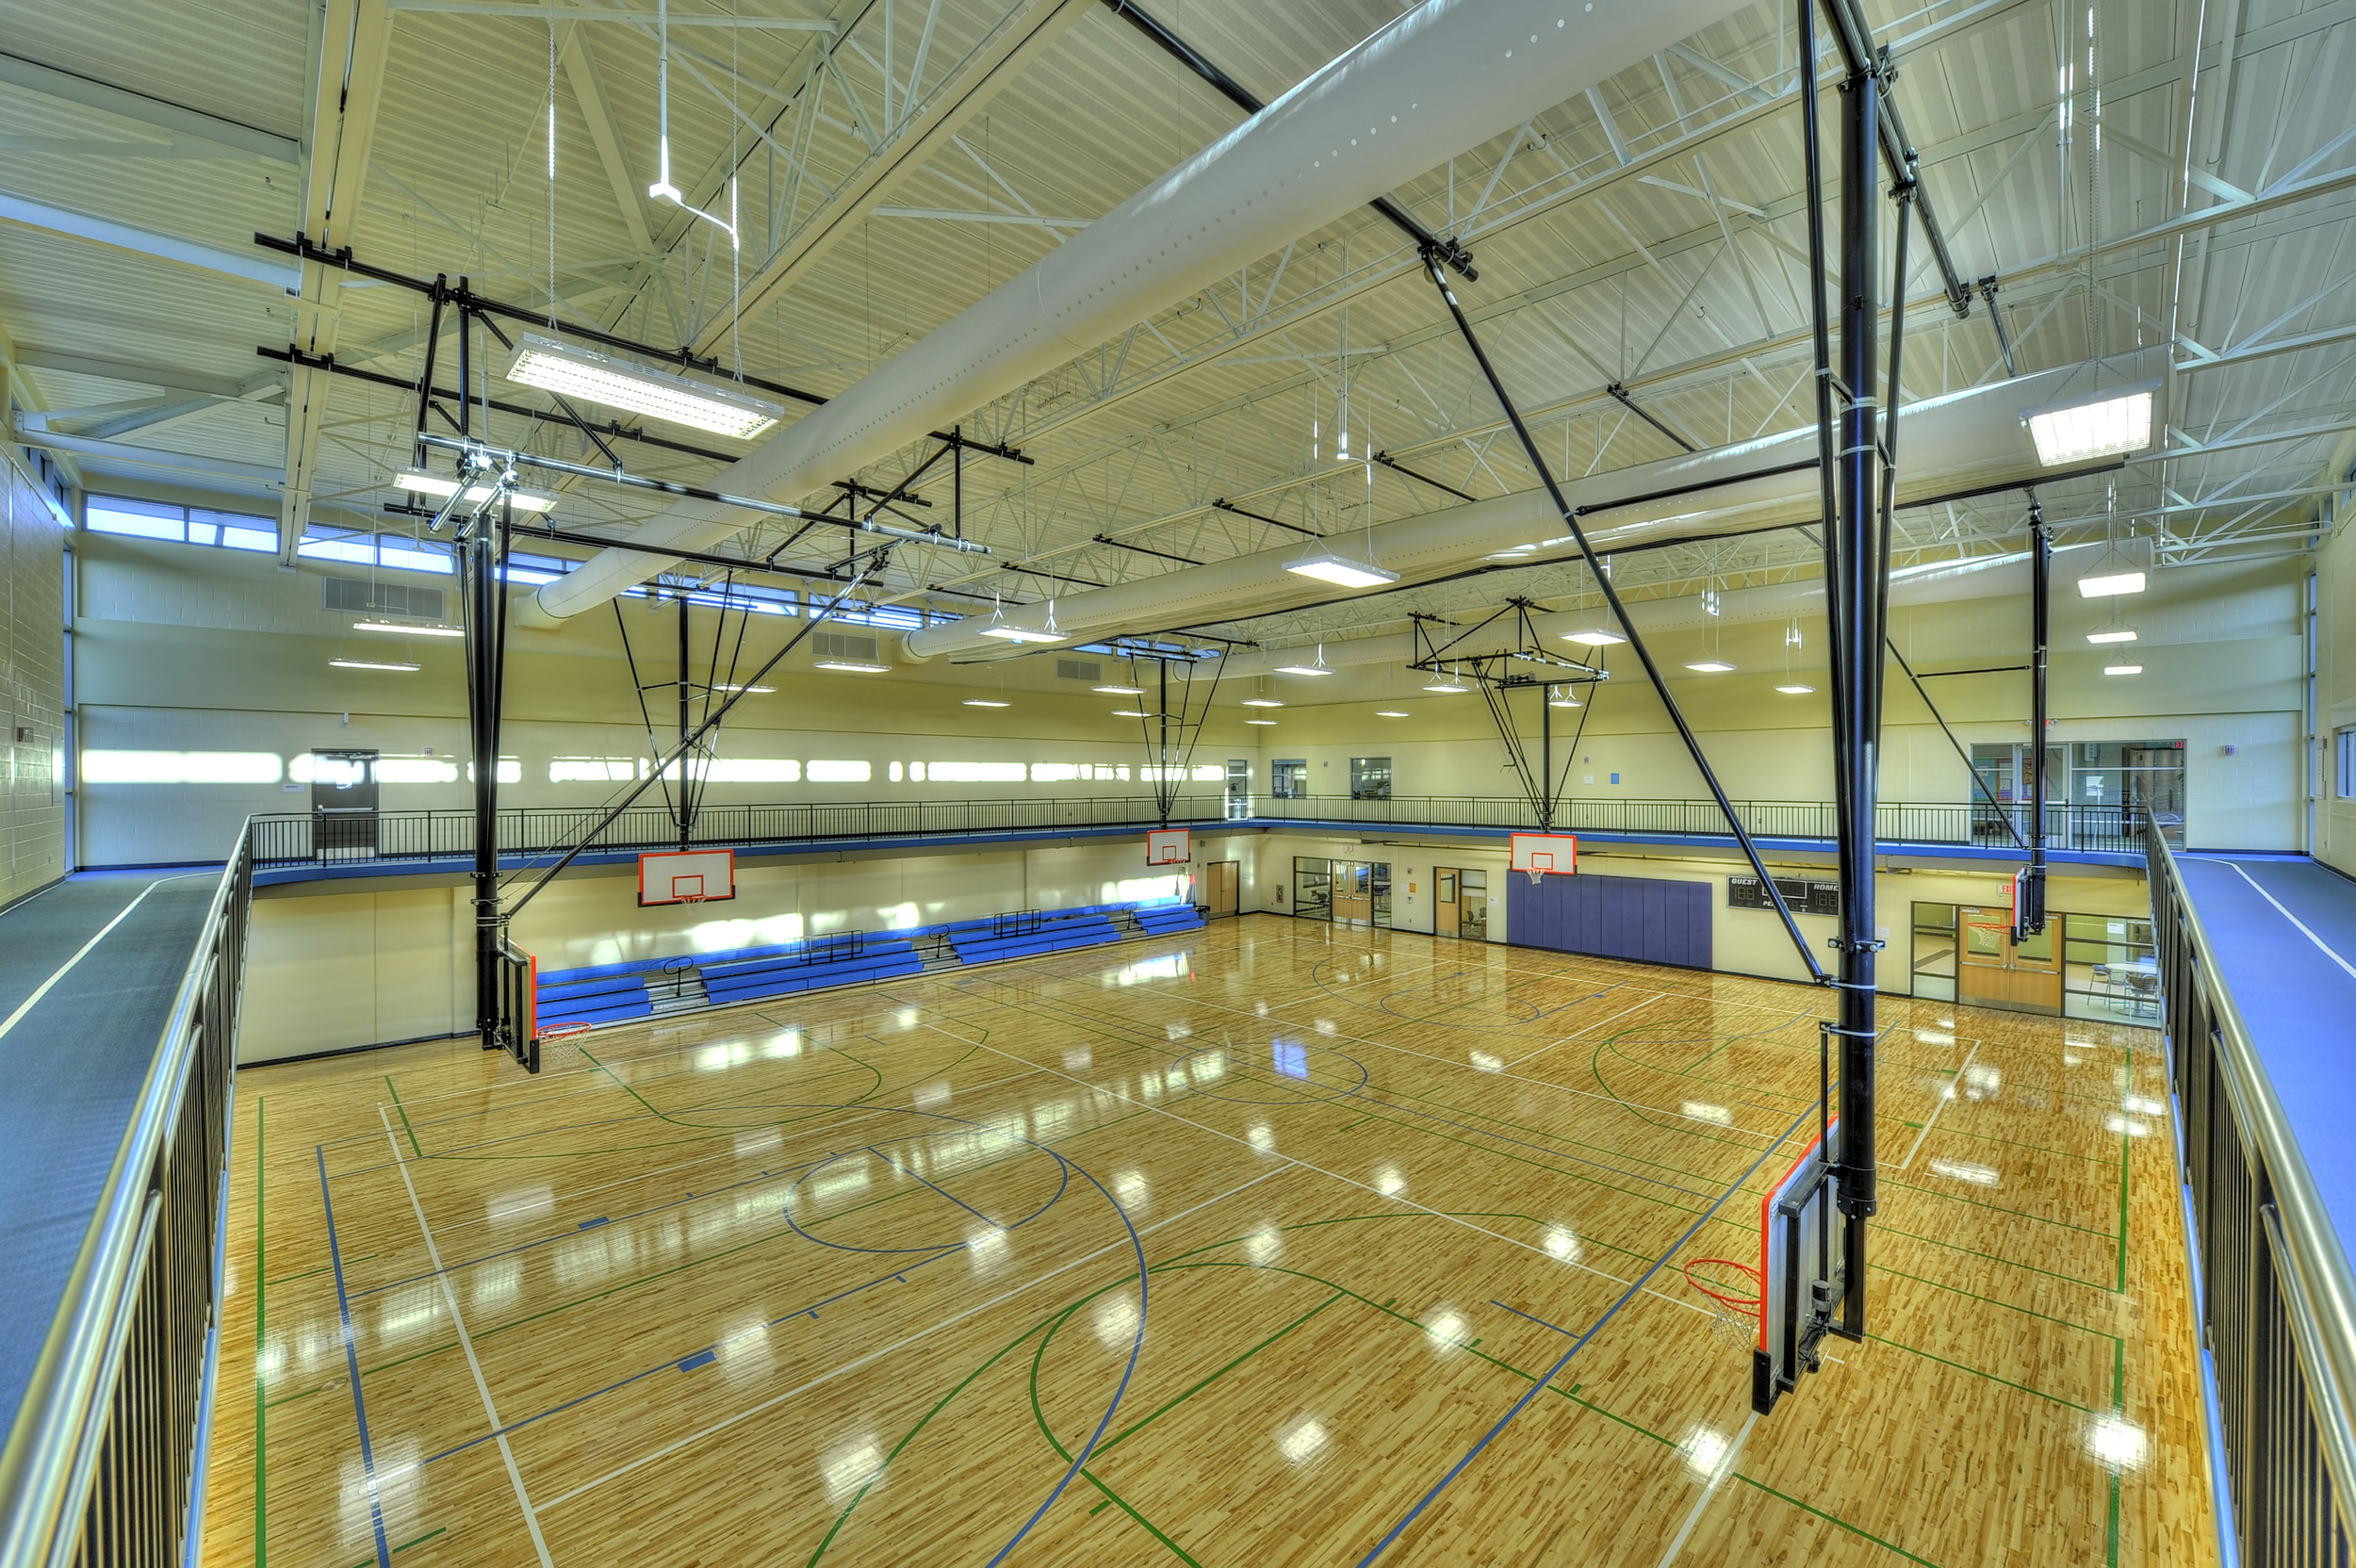 Basketball Court Running Track 2.jpg